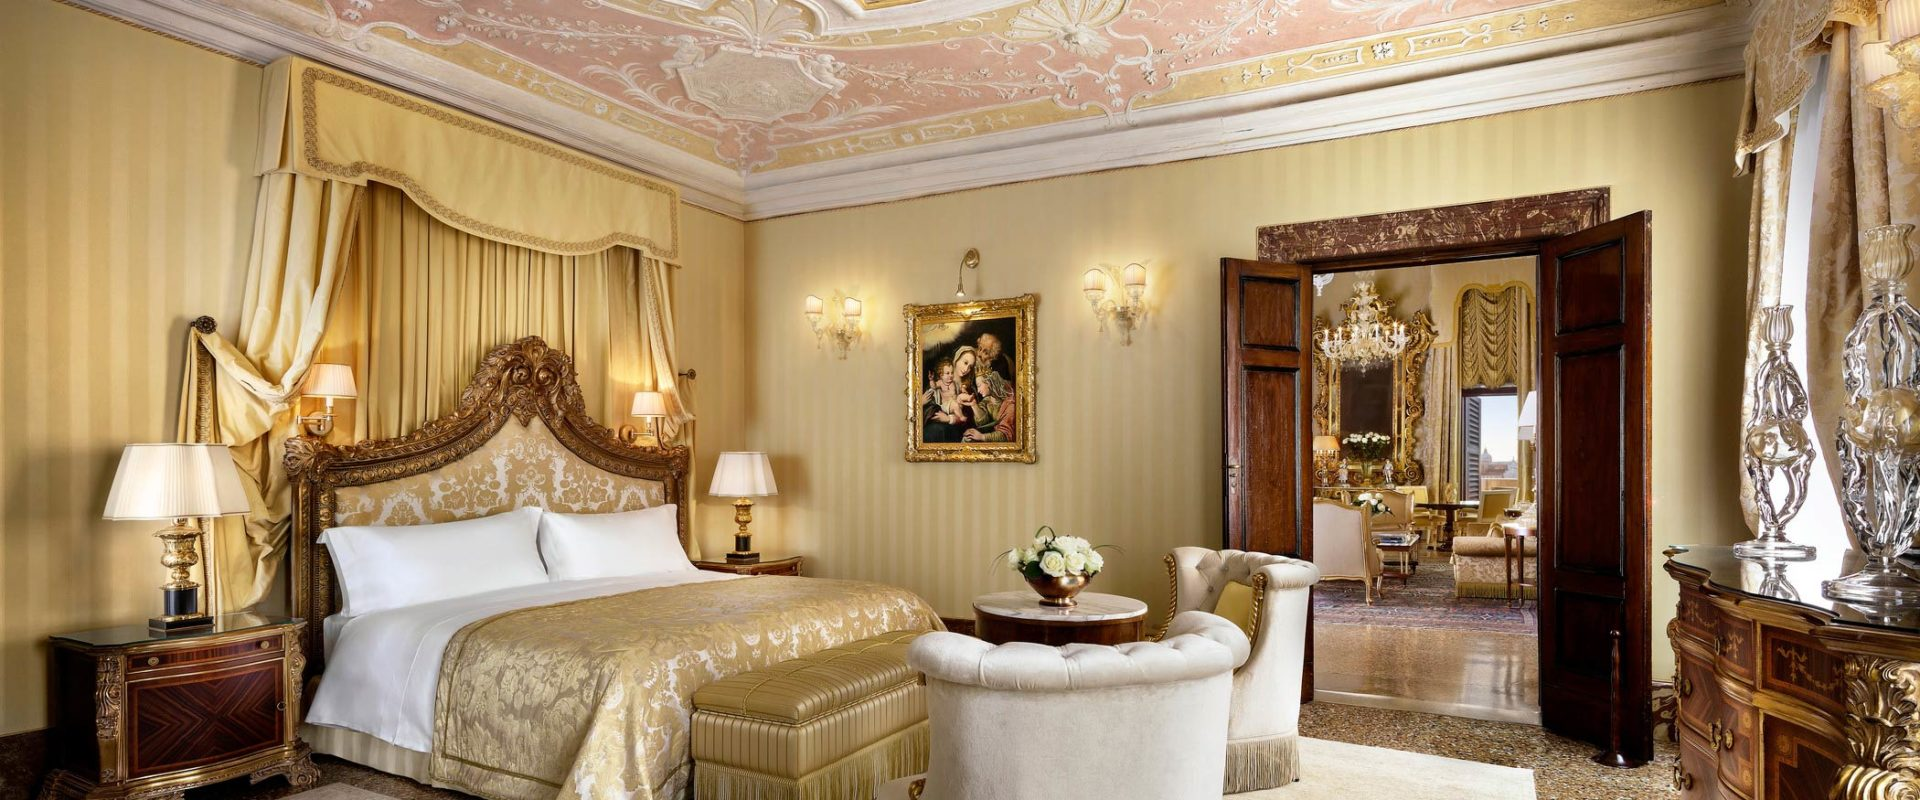 Hotel-Danieli-Venice-Doge-Dandolo-Royal-Suite-Bedroom